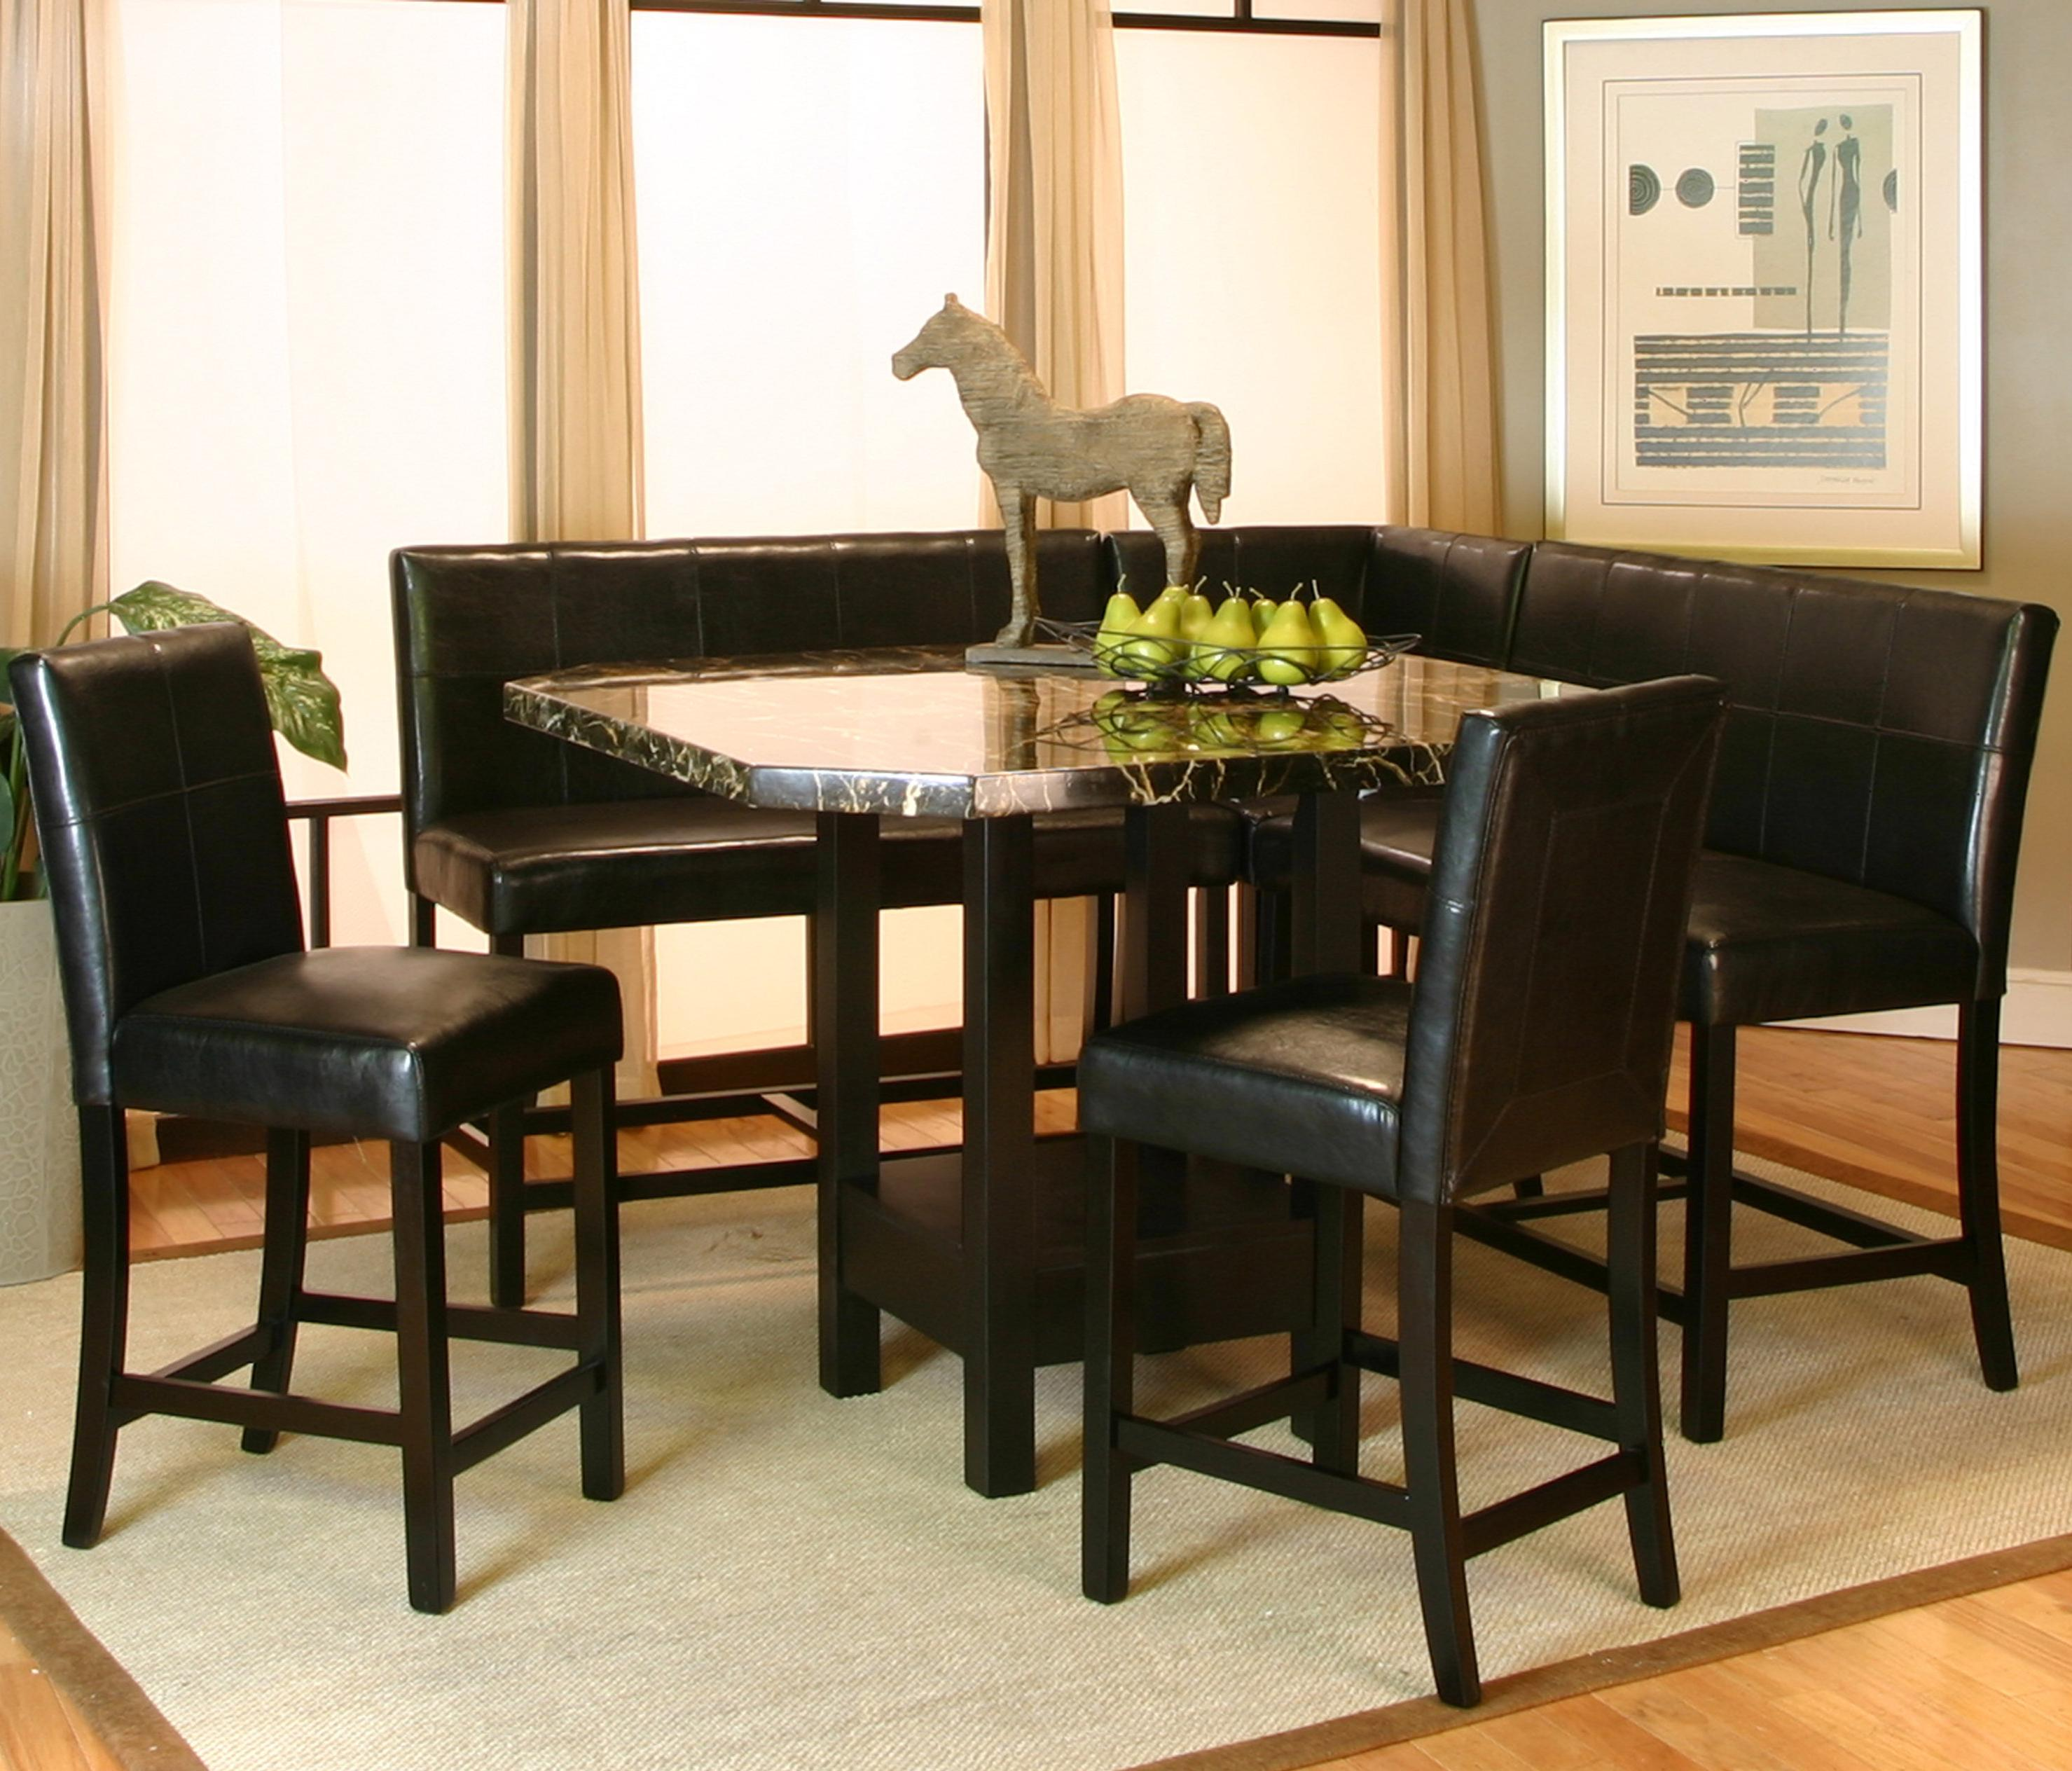 5 piece pub table set by cramco inc wolf and gardiner. Black Bedroom Furniture Sets. Home Design Ideas